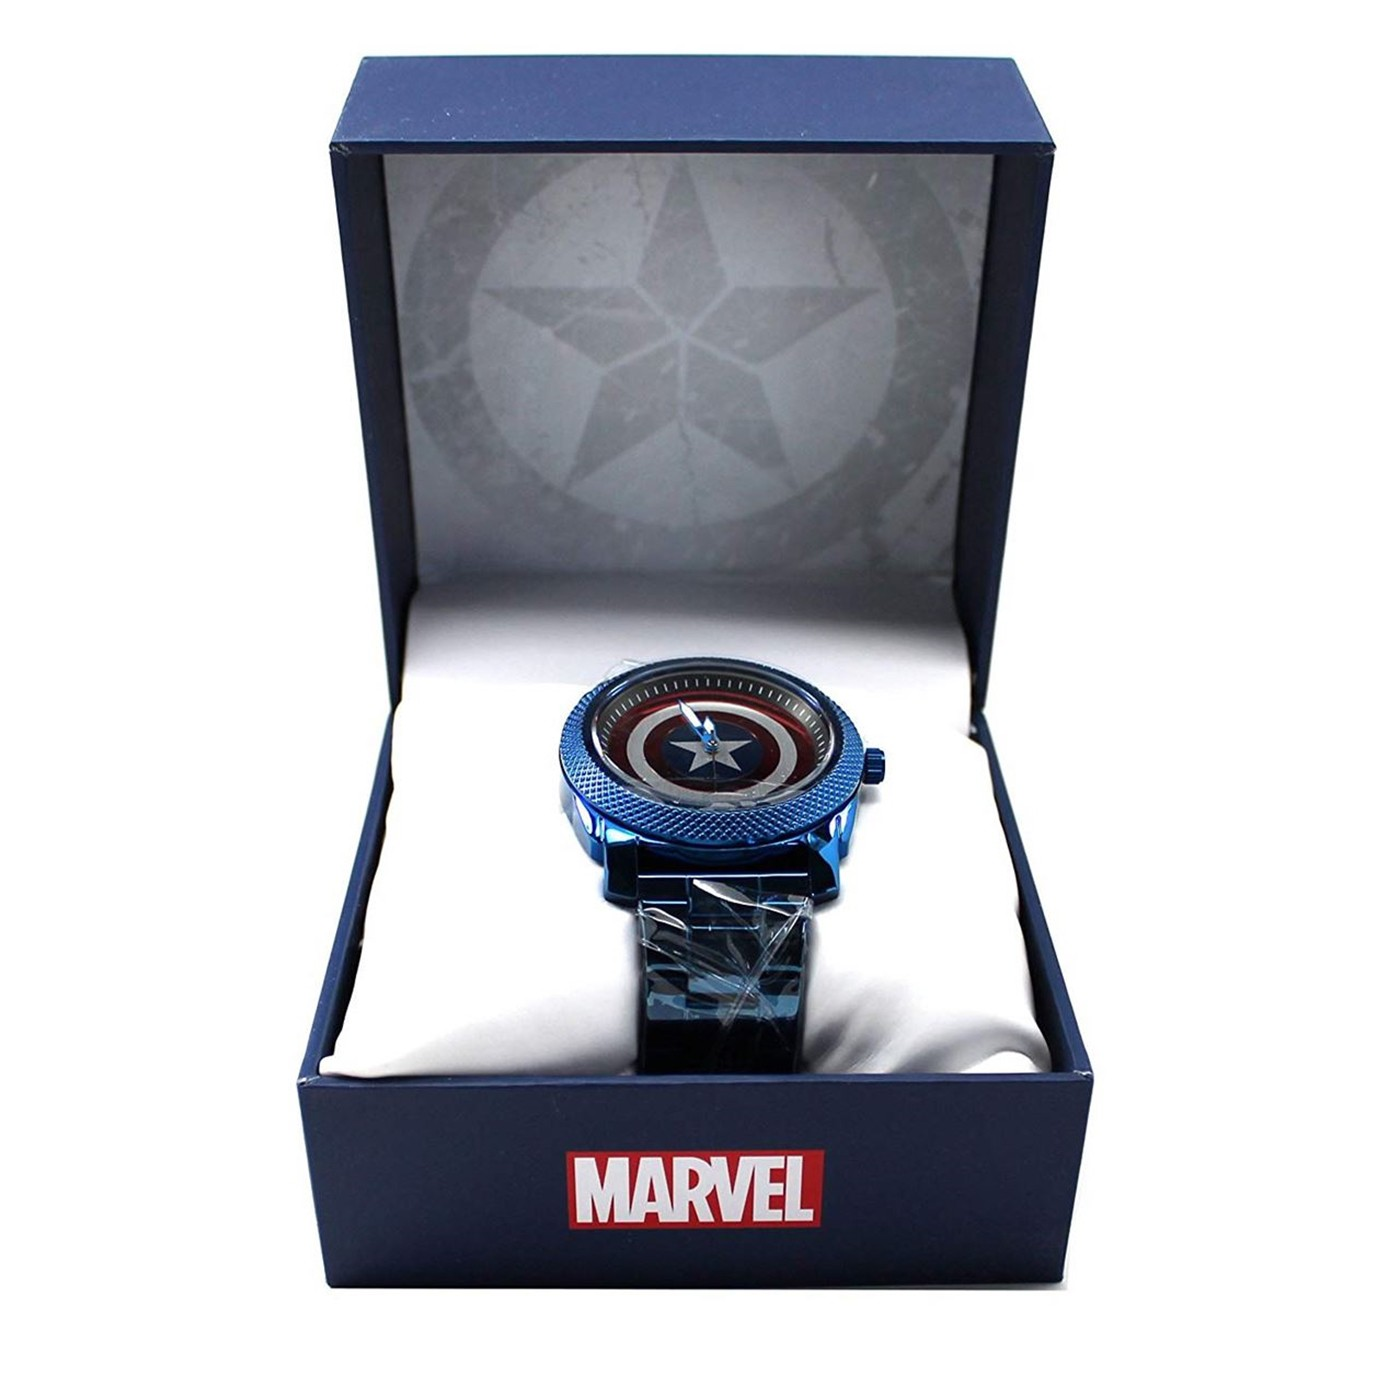 Captain America Stainless Steel Watch